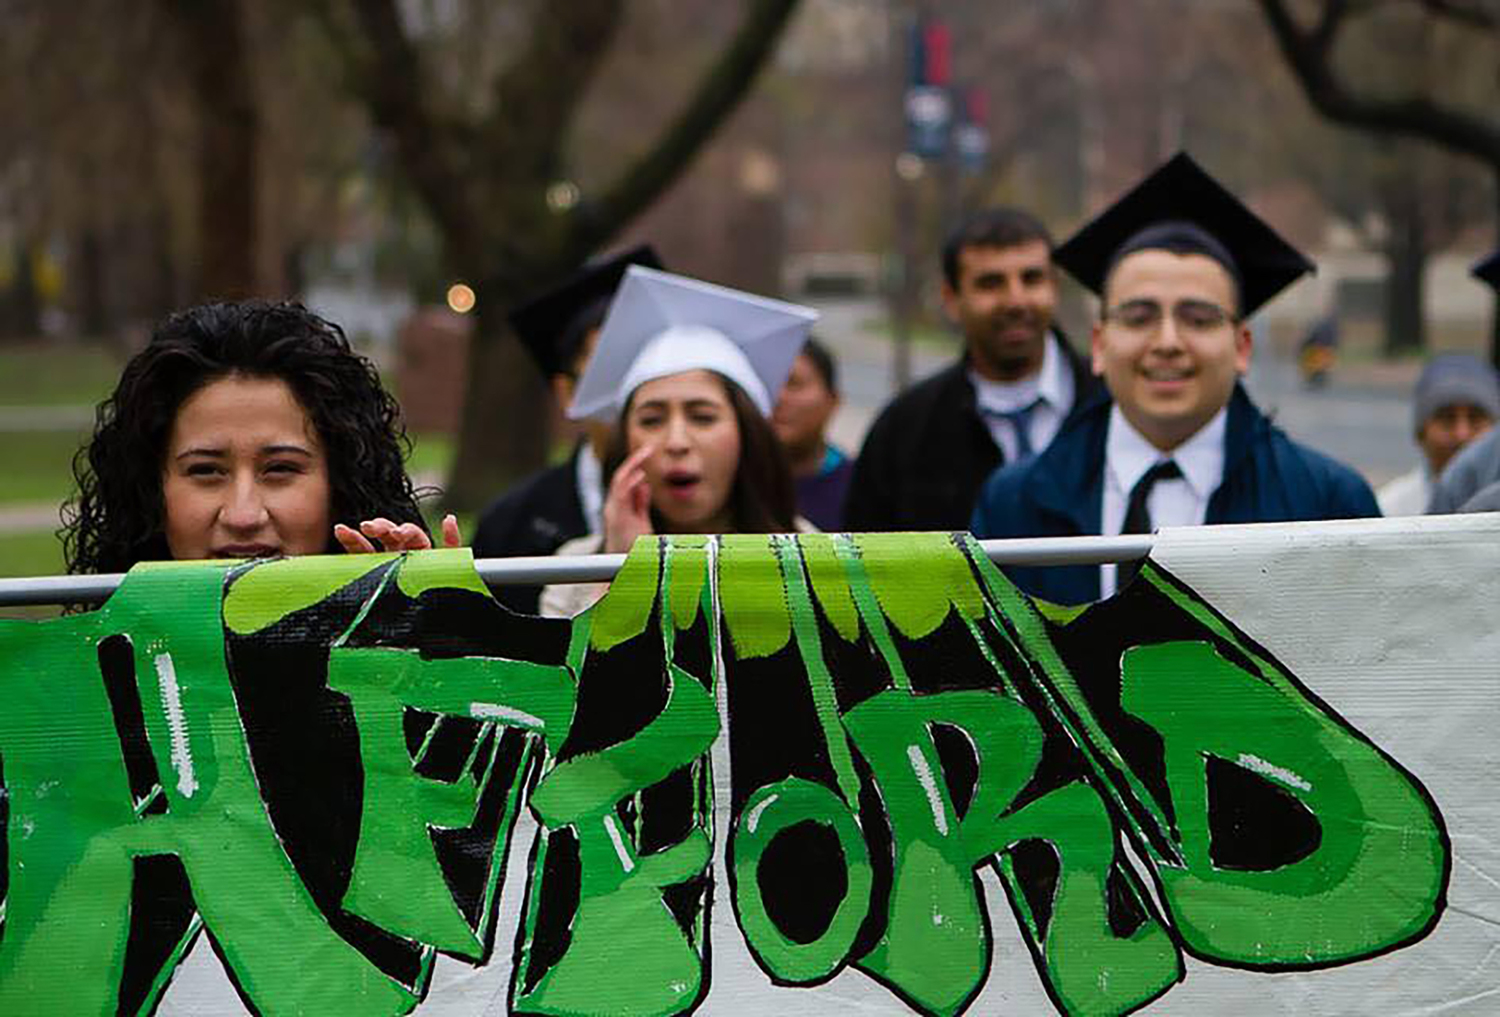 Alison Martinez-Carrasco (middle) walks in front of the Connecticut State Capitol in Hartford, Connecticut during a rally supporting the Afford to Dream campaign in 2014. (Courtesy/Morty Ortega)